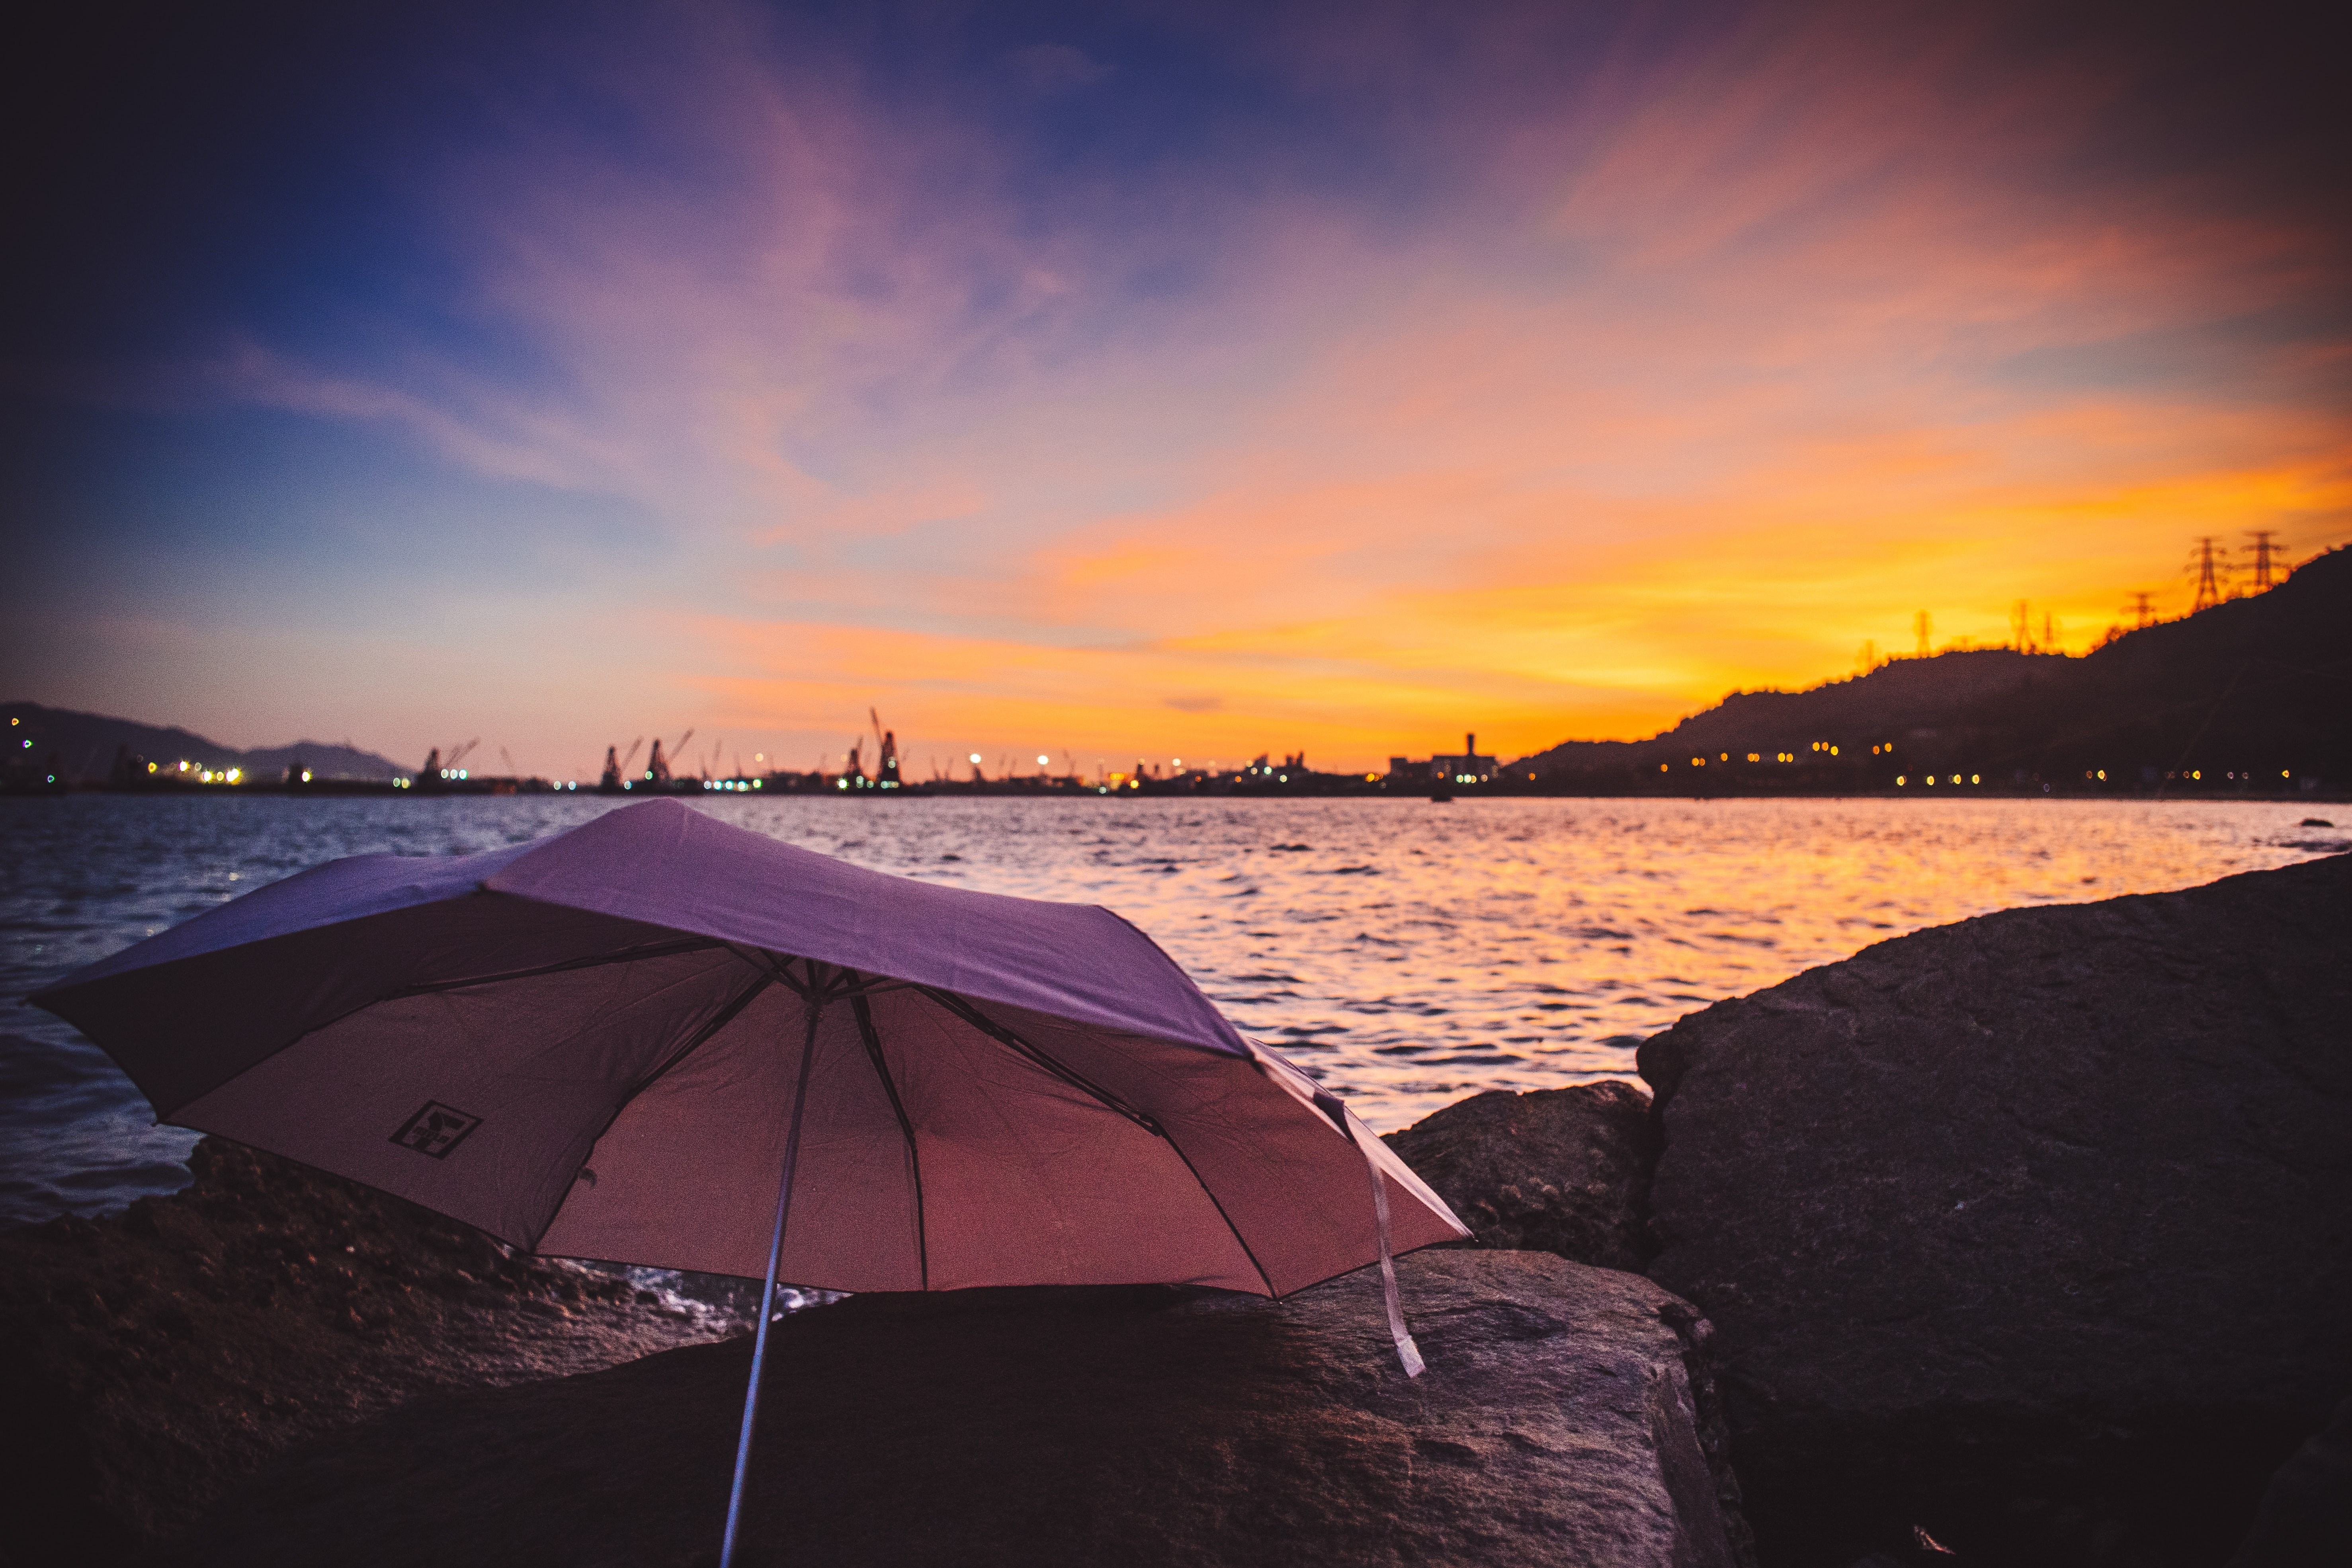 pink umbrella on stone near body of water at golden hour